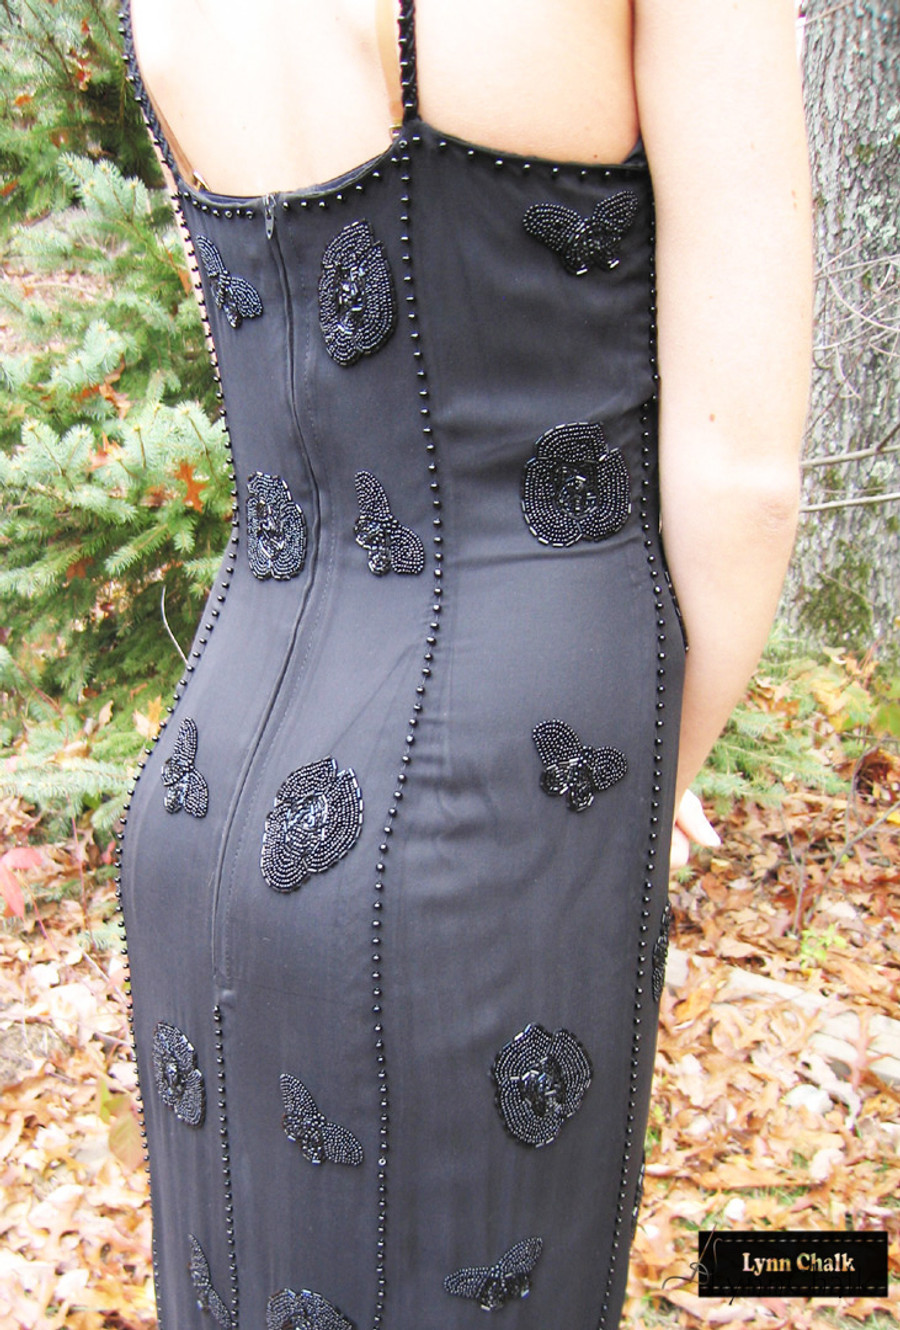 One-of-a-kind Hand Beaded Dress by Lynn Chalk with Flowers and Butterflies in all Black Beads on Silk Chiffon